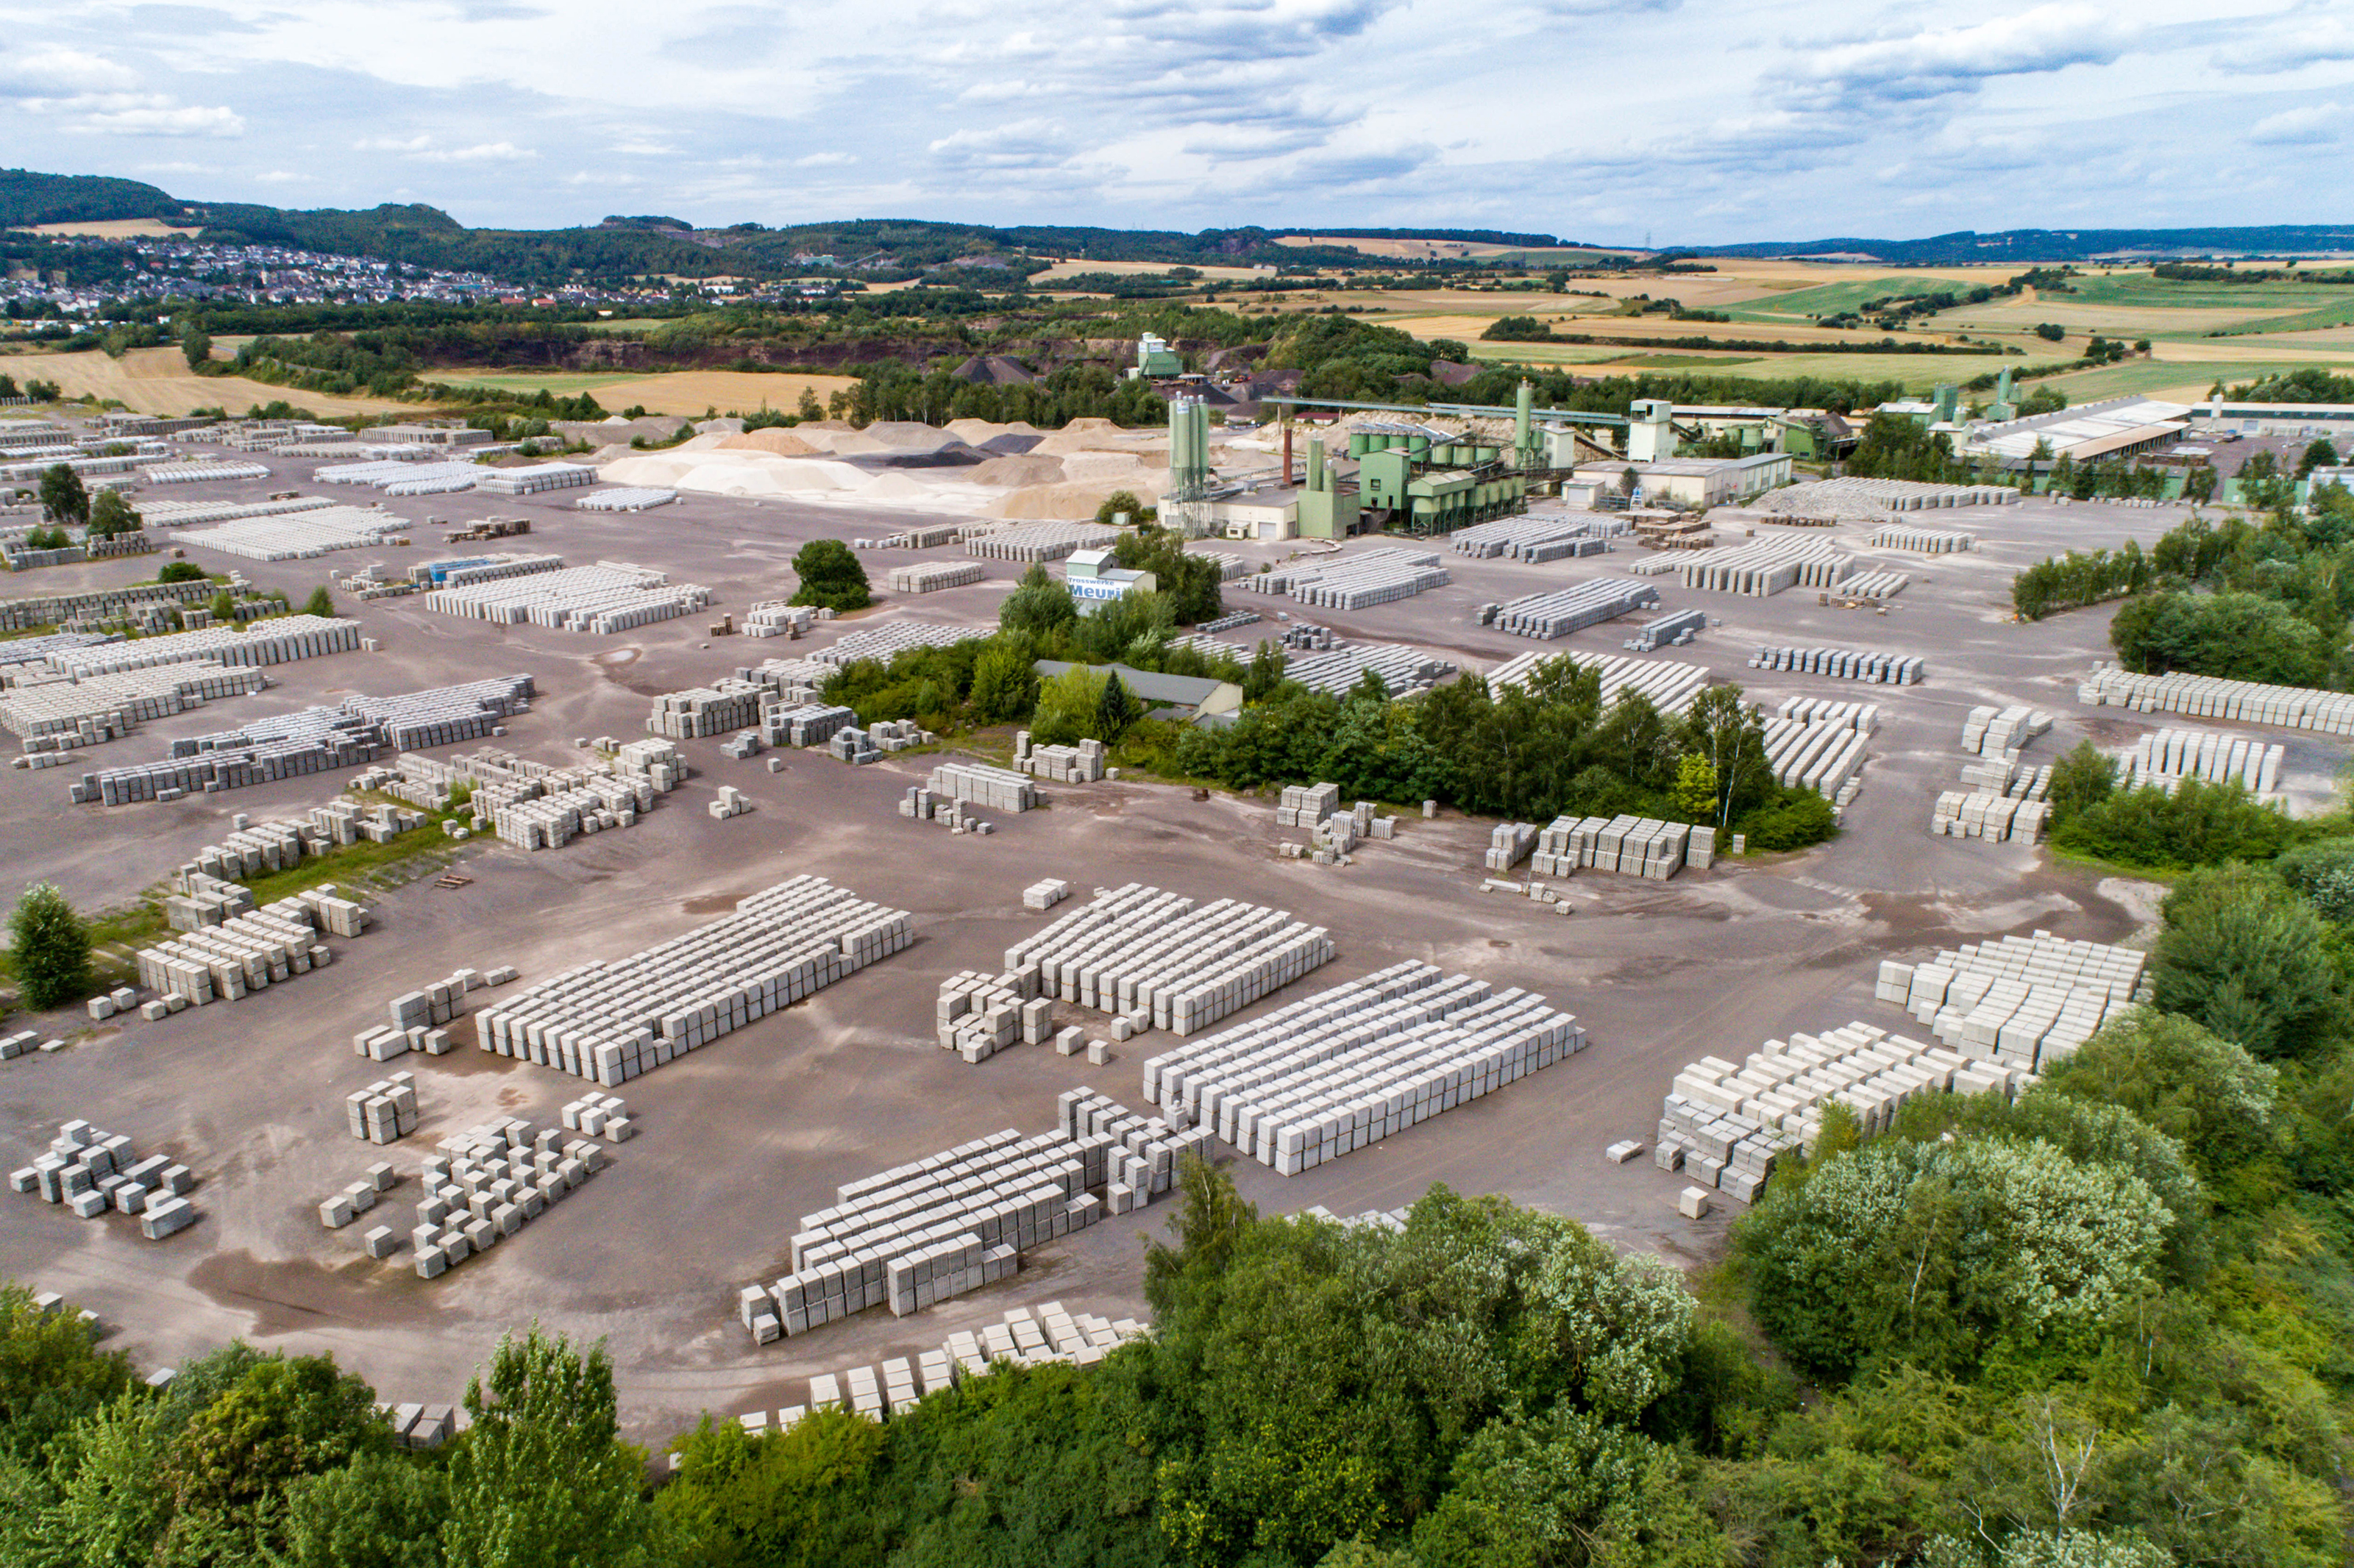 Koblenz, Germany 21.07.2018 Aerial view of factory for Blocks of concrete stones Building materials industry products for homebuilding construction.